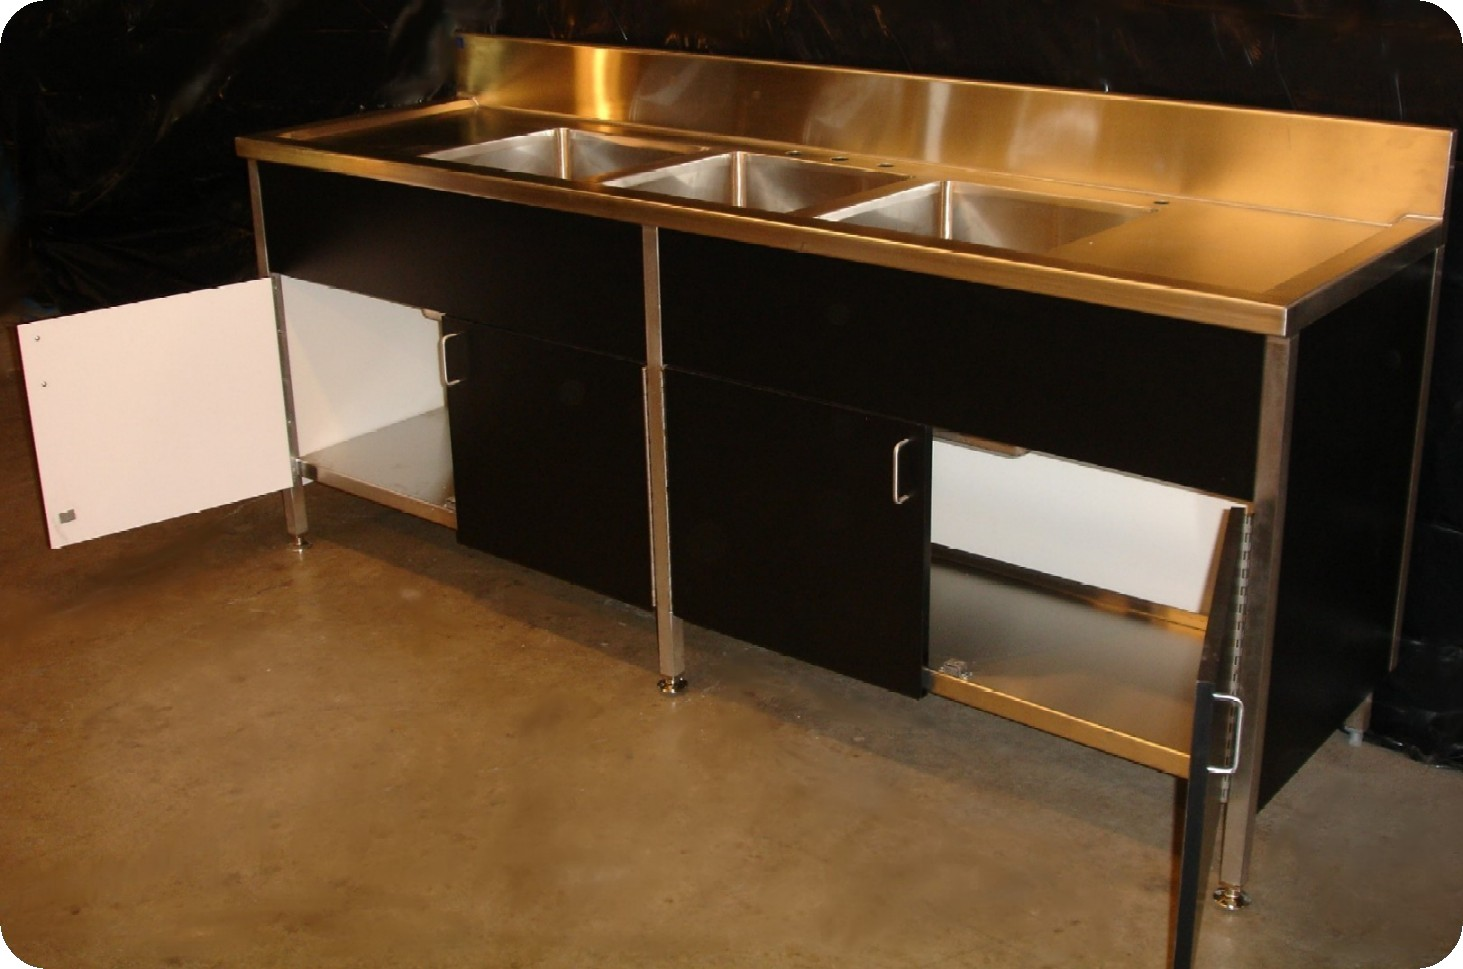 used stainless steel commercial kitchen cabinets stainless steel kitchen cabinets Commercial Stainless Steel Kitchen Cabinets